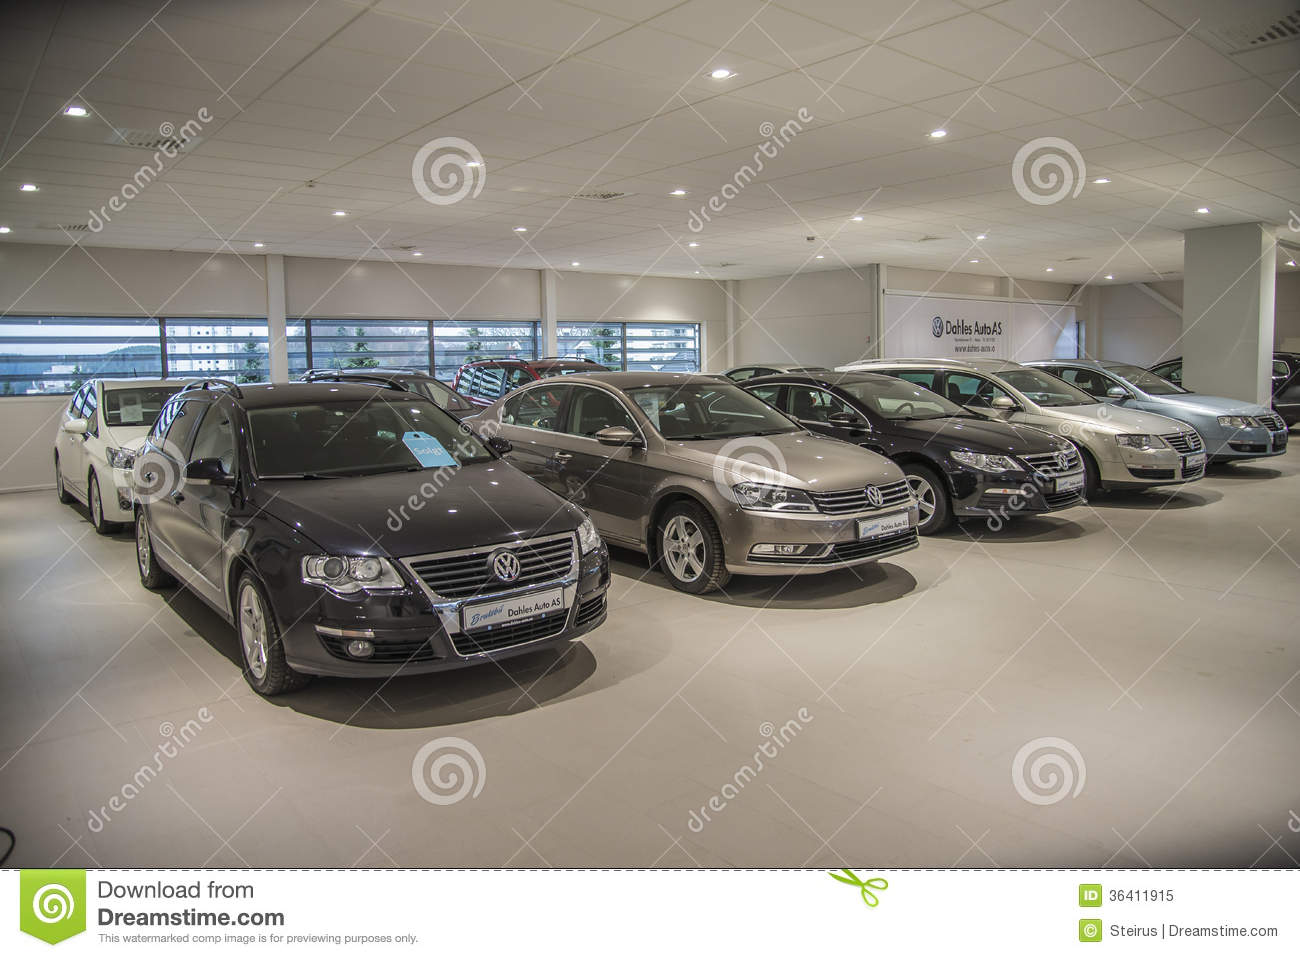 Used Cars For Sale Stock Image Image Of Cars License: VW Used Cars For Sale Editorial Image. Image Of Halden